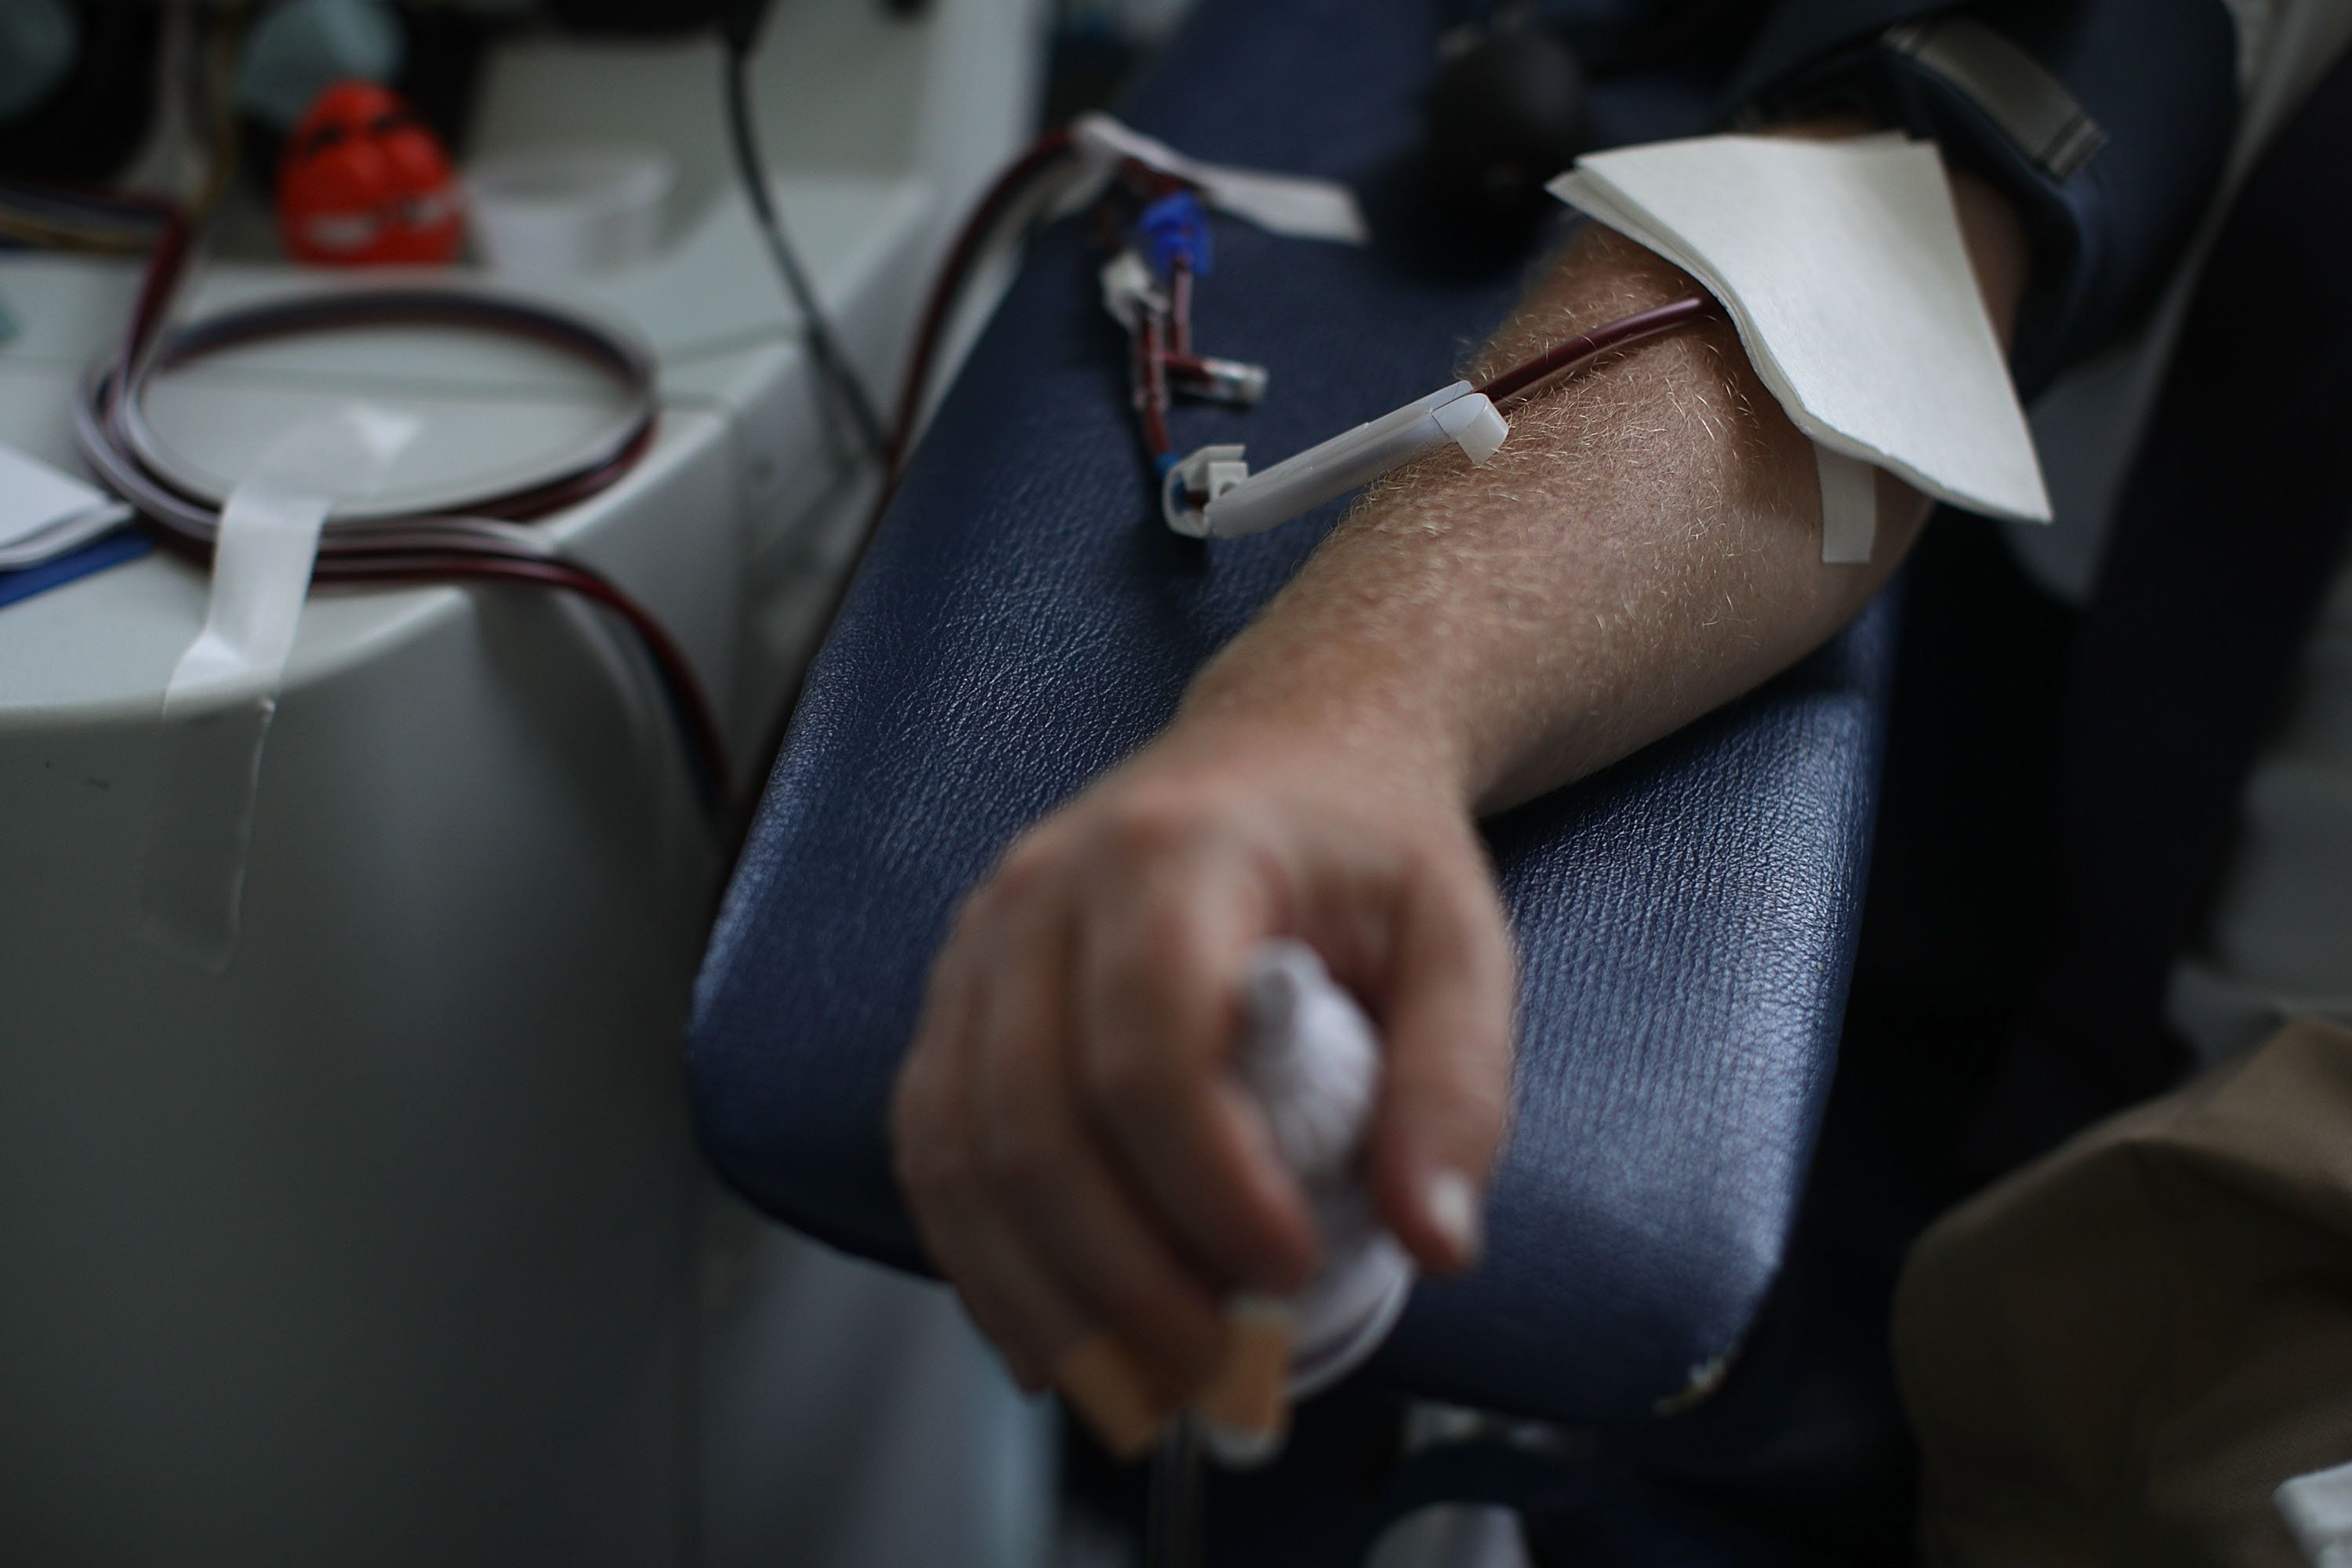 WASHINGTON, DC - JUNE 20:  A congressional staff donates his blood during a blood drive June 20, 2017 on Capitol Hill in Washington, DC. House Chief Deputy Majority Whip Patrick McHenry, INOVA Blood Services and the American Red Cross held a blood drive in support of Majority Whip Steve Scalise and others wounded in last Wednesday's Alexandria shooting.  (Photo by Alex Wong/Getty Images)